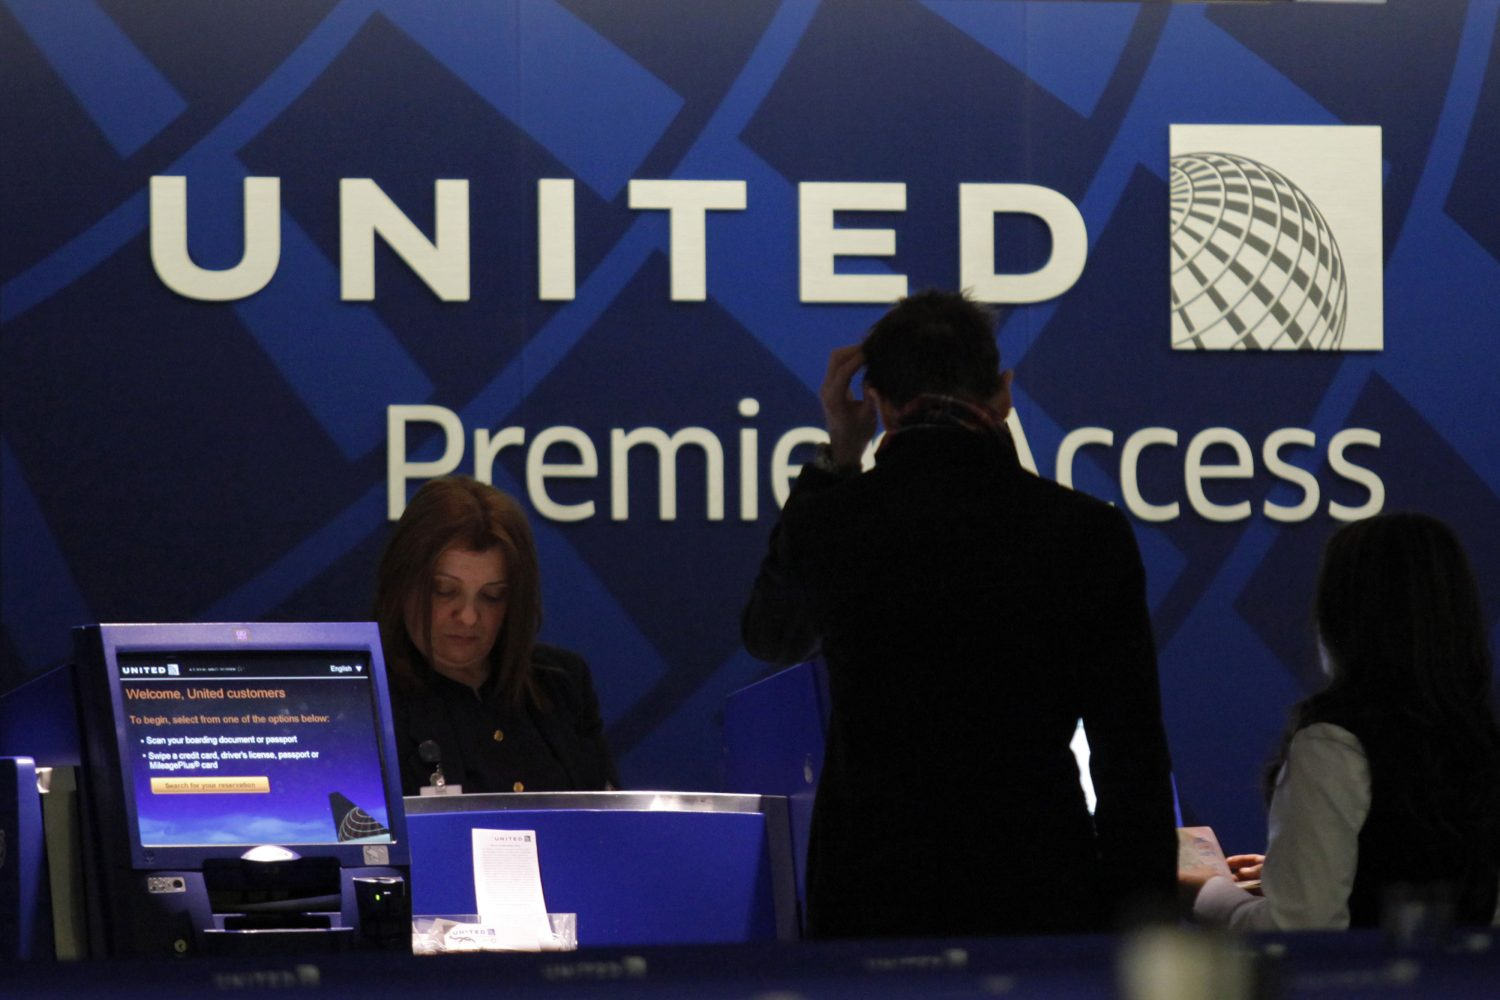 FILE PHOTO: A worker from United attends to some customers during their check in process at Newark International airport in New Jersey , November 15, 2012. REUTERS/Eduardo Munoz/File Photo